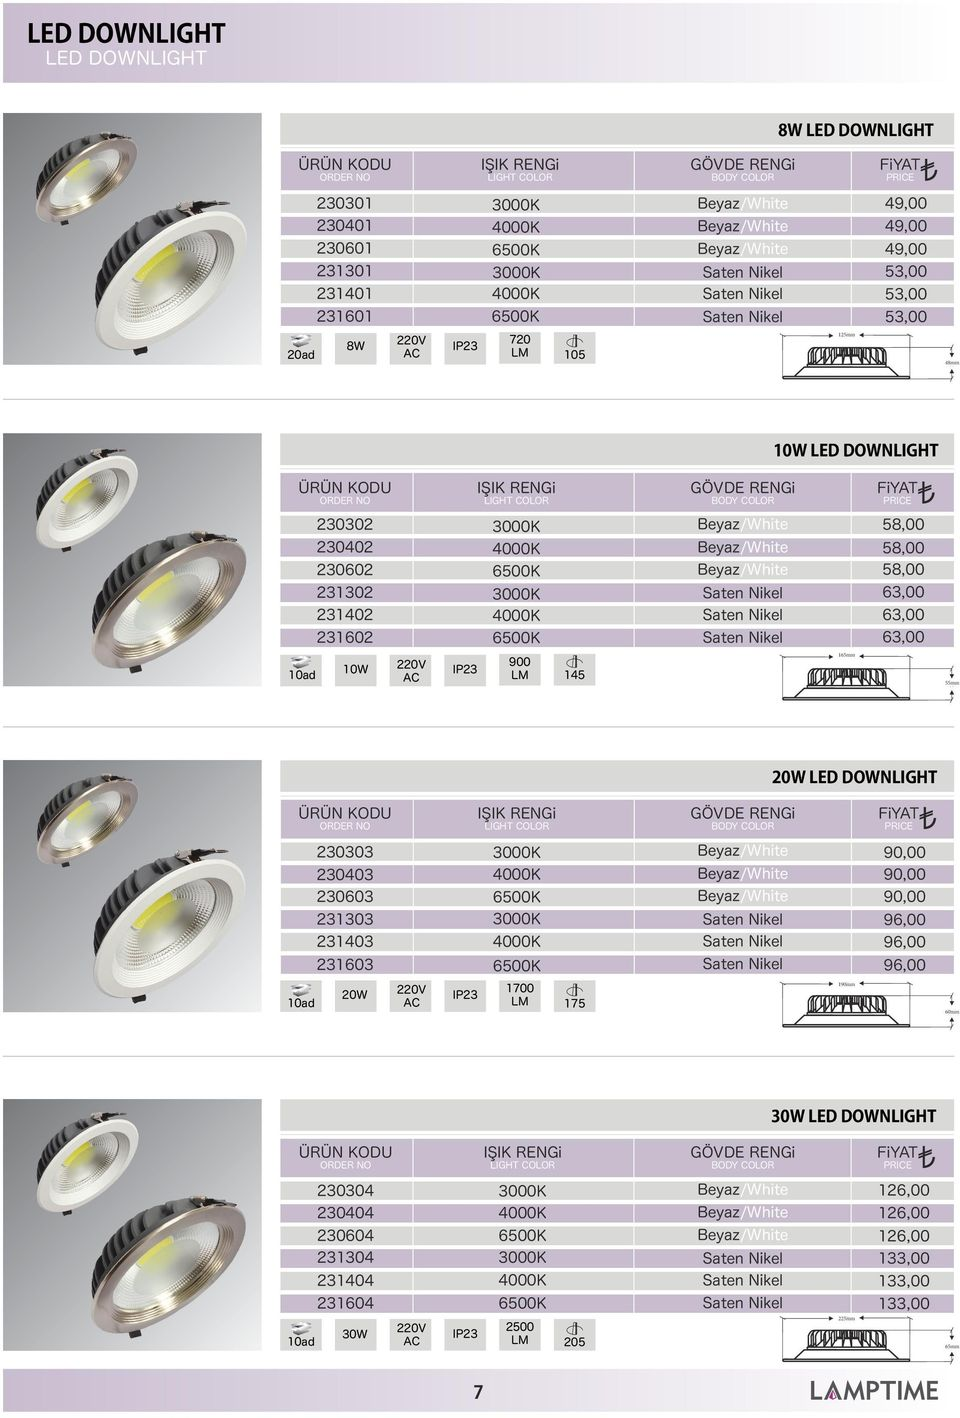 55mm 20W DOWNLIGHT 230303 90,00 230403 90,00 230603 90,00 231303 96,00 231403 96,00 231603 96,00 10ad 20W IP23 1700 175 190mm 60mm